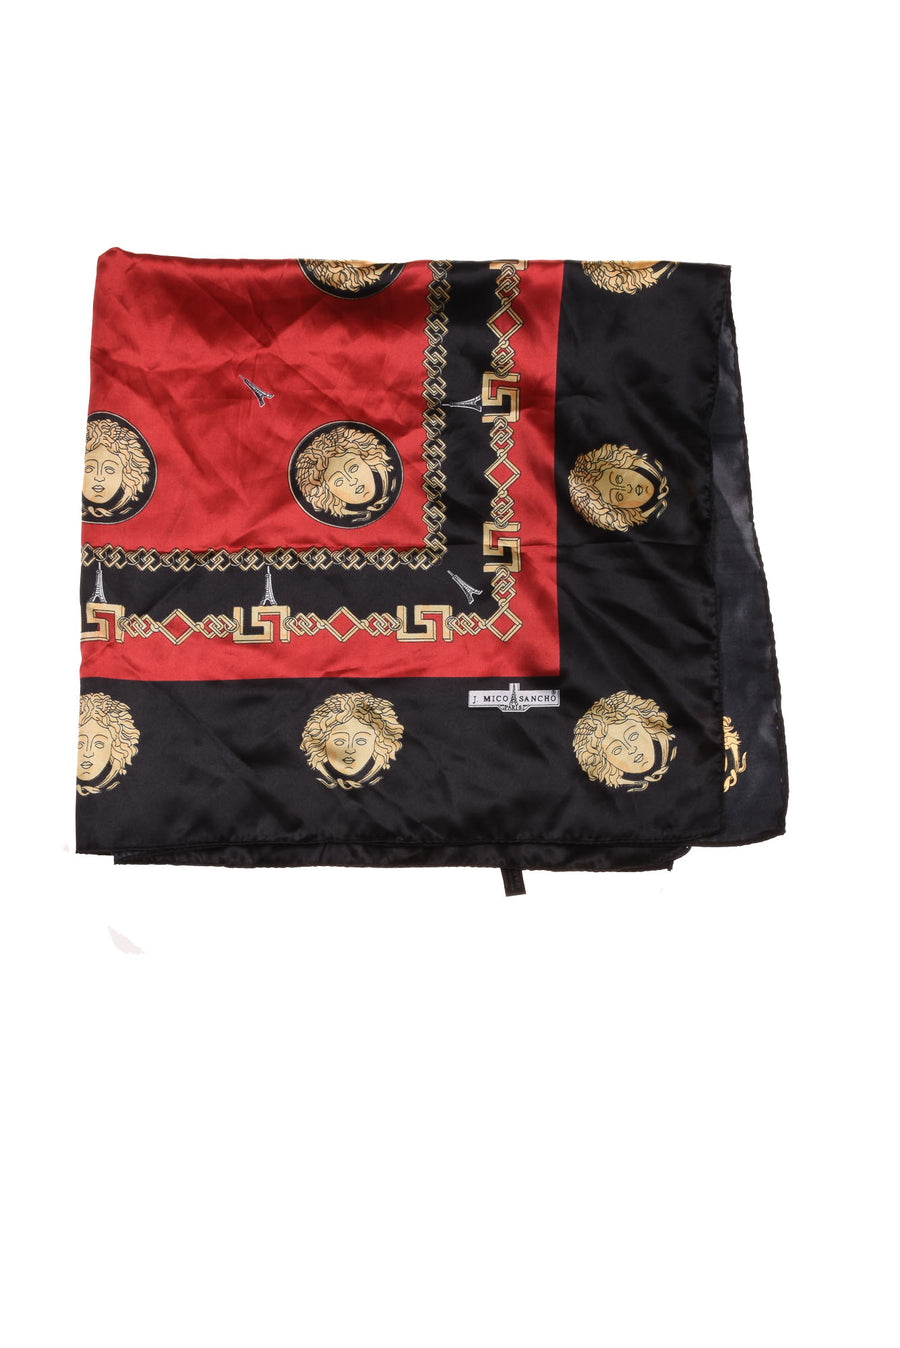 USED J. Mico Sancho USED J. Mico Sancho Women's Scarf One Size Black One Size Black, Red, & Gold Tone